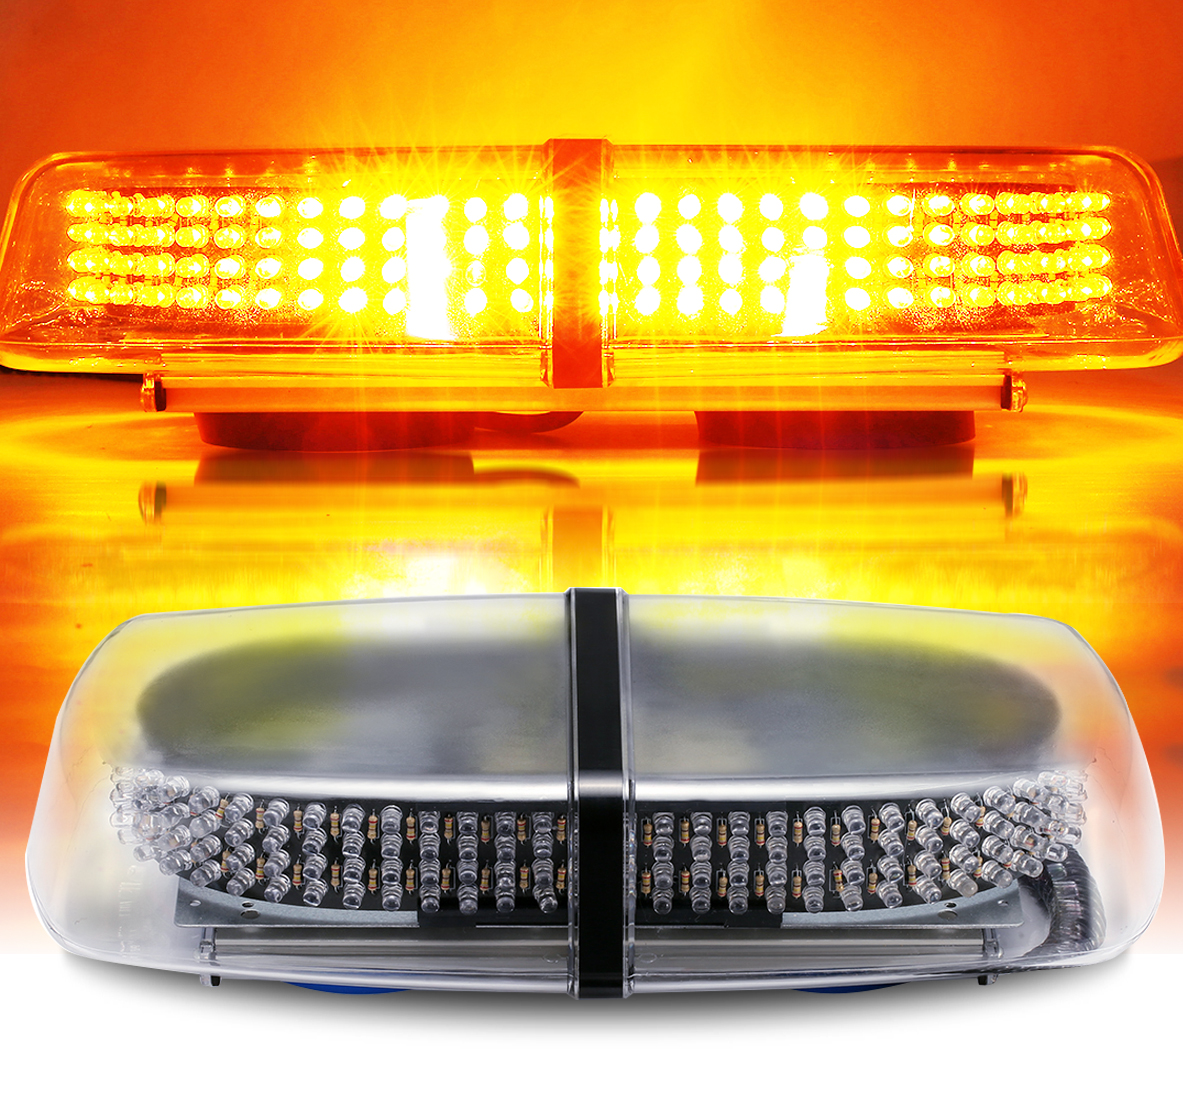 240 LED 7-Flash Modes Emergency Warning Strobe Light Breakdown Hazard Flash Beacon Lights Bar Caution Warning for Car Vehicle Van Truck SUV